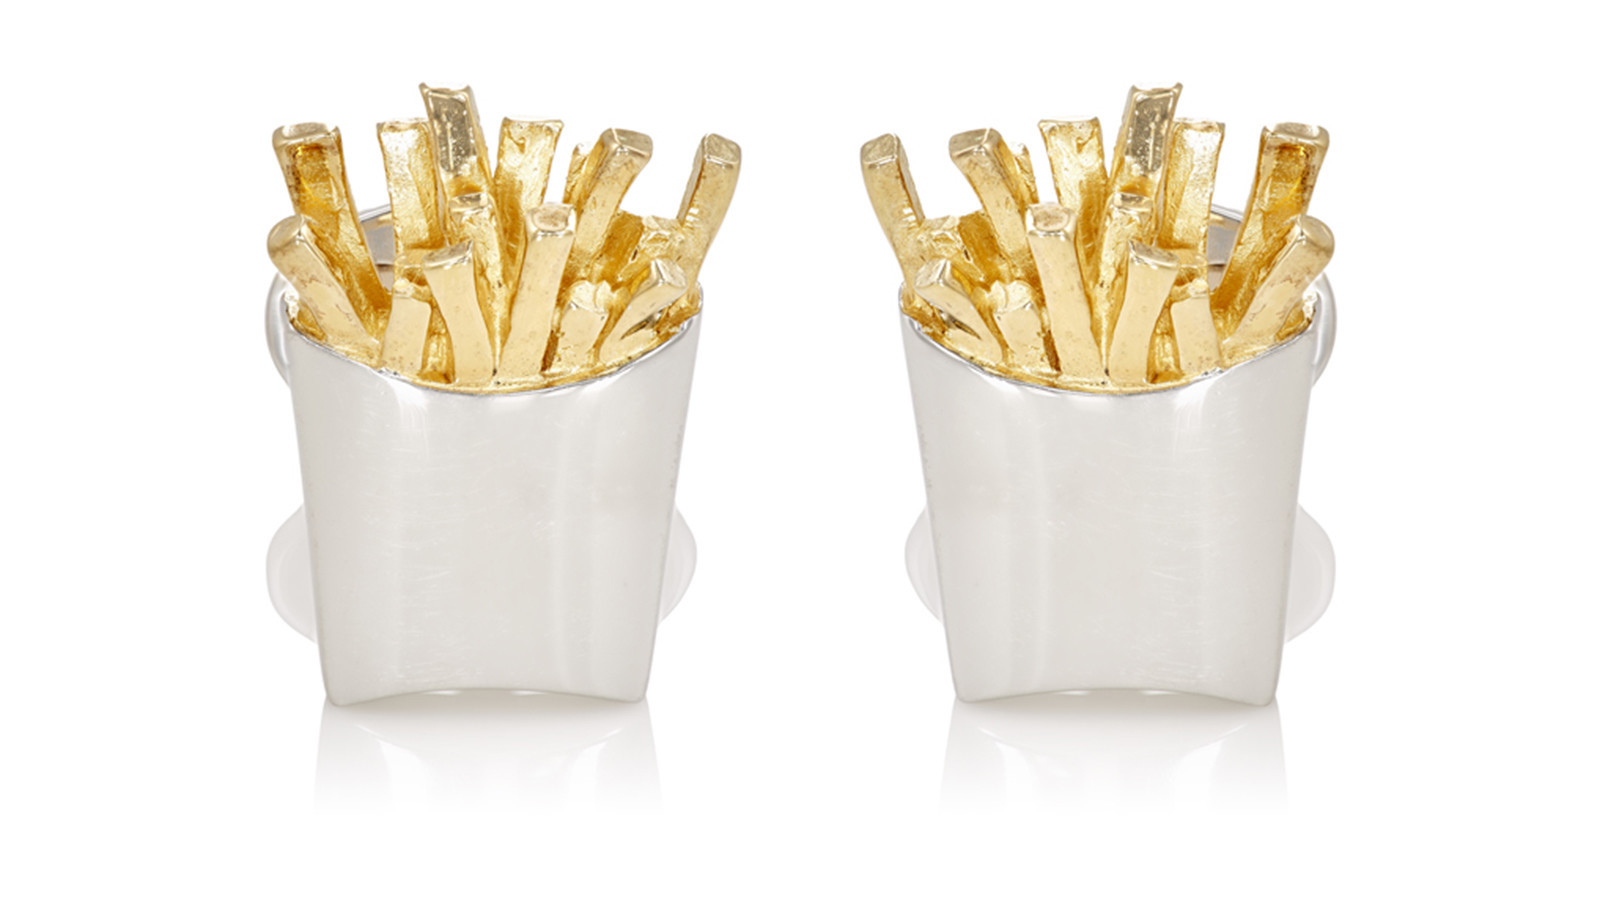 Jan Leslie handmade sterling silver and 24-karat yellow gold vermeil French fry cufflinks, $395 at B